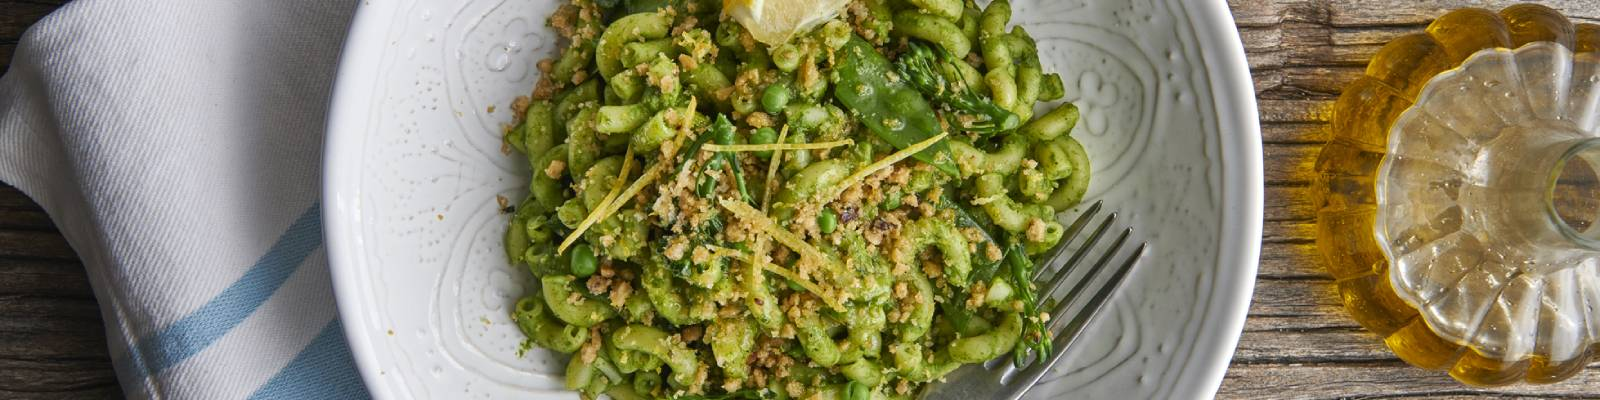 Pasta Garofalo - Macaroni with Mangetout, Peas & Tenderstem Broccoli topped with Lemon zest & Citrus crumb